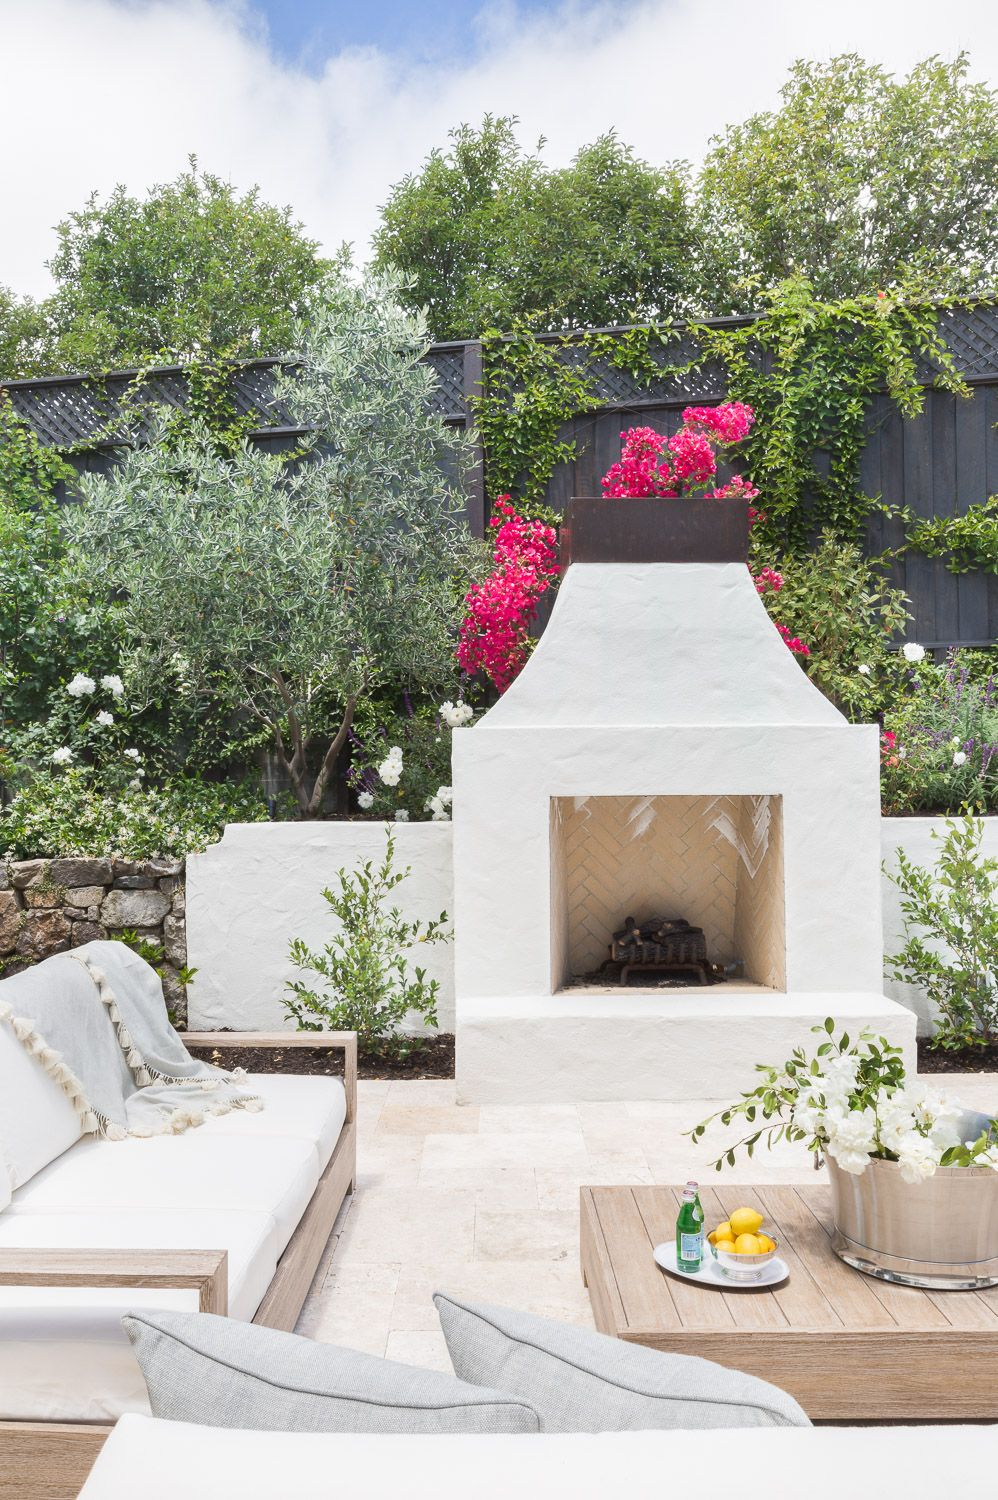 Outdoor Fireplace White Stucco Spanish Revival Backyard Fireplace Outdoor Kitchen Design Patio Fireplace